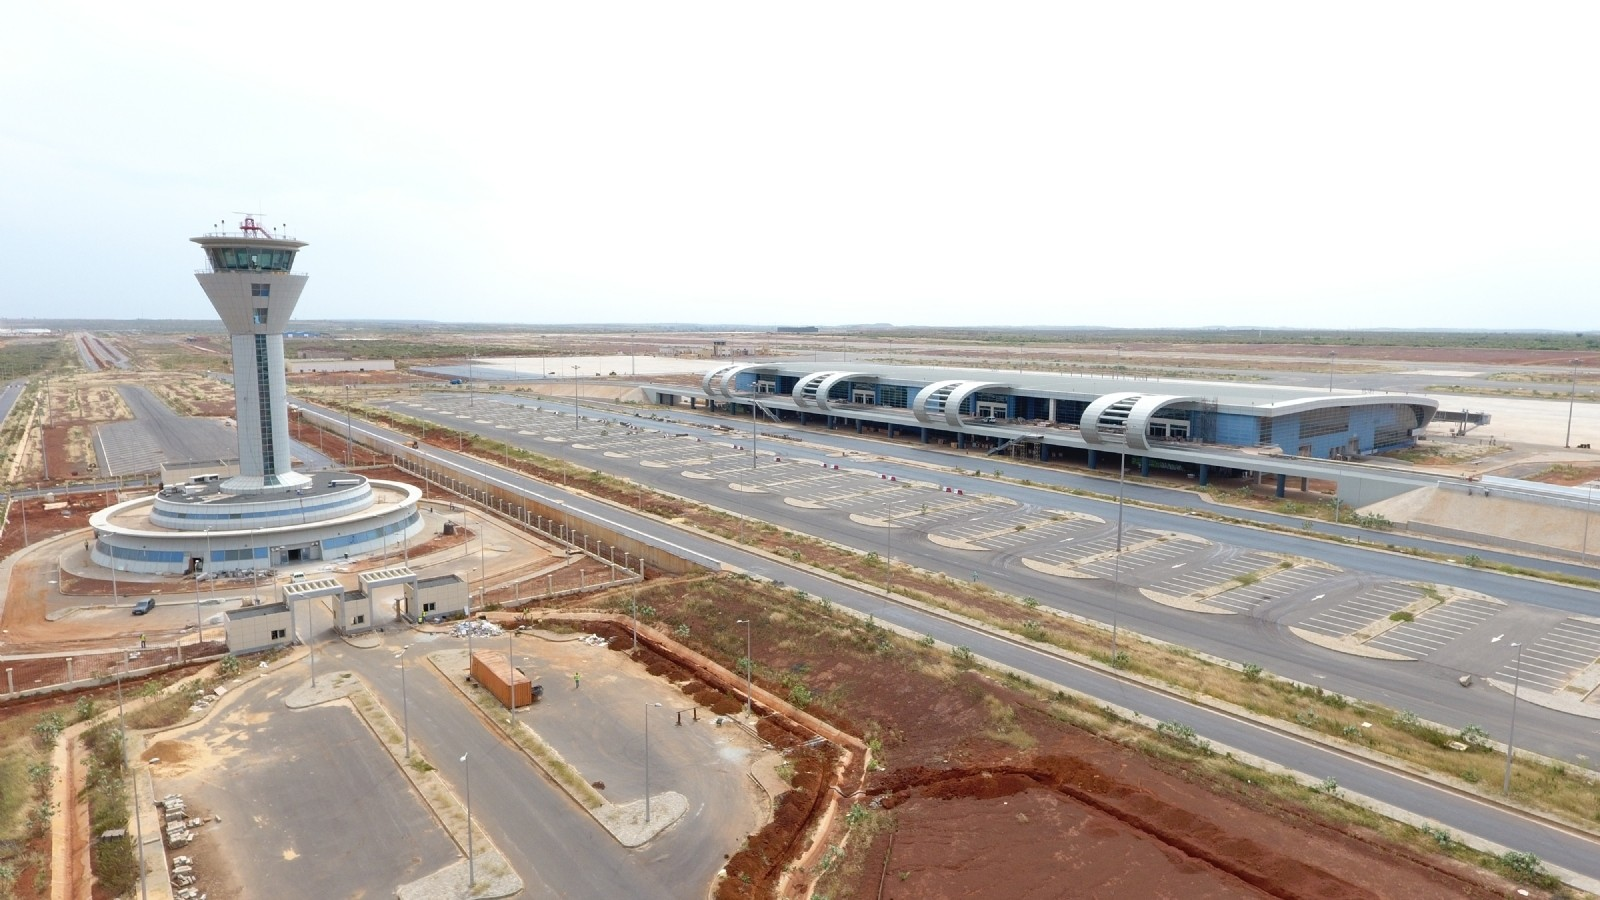 Turkish contractors Limak and Summa constructed the Au00e9roport International Blaise-Diagne Airport in Senegalu2019s capital Dakar with a 575-million-euro investment.